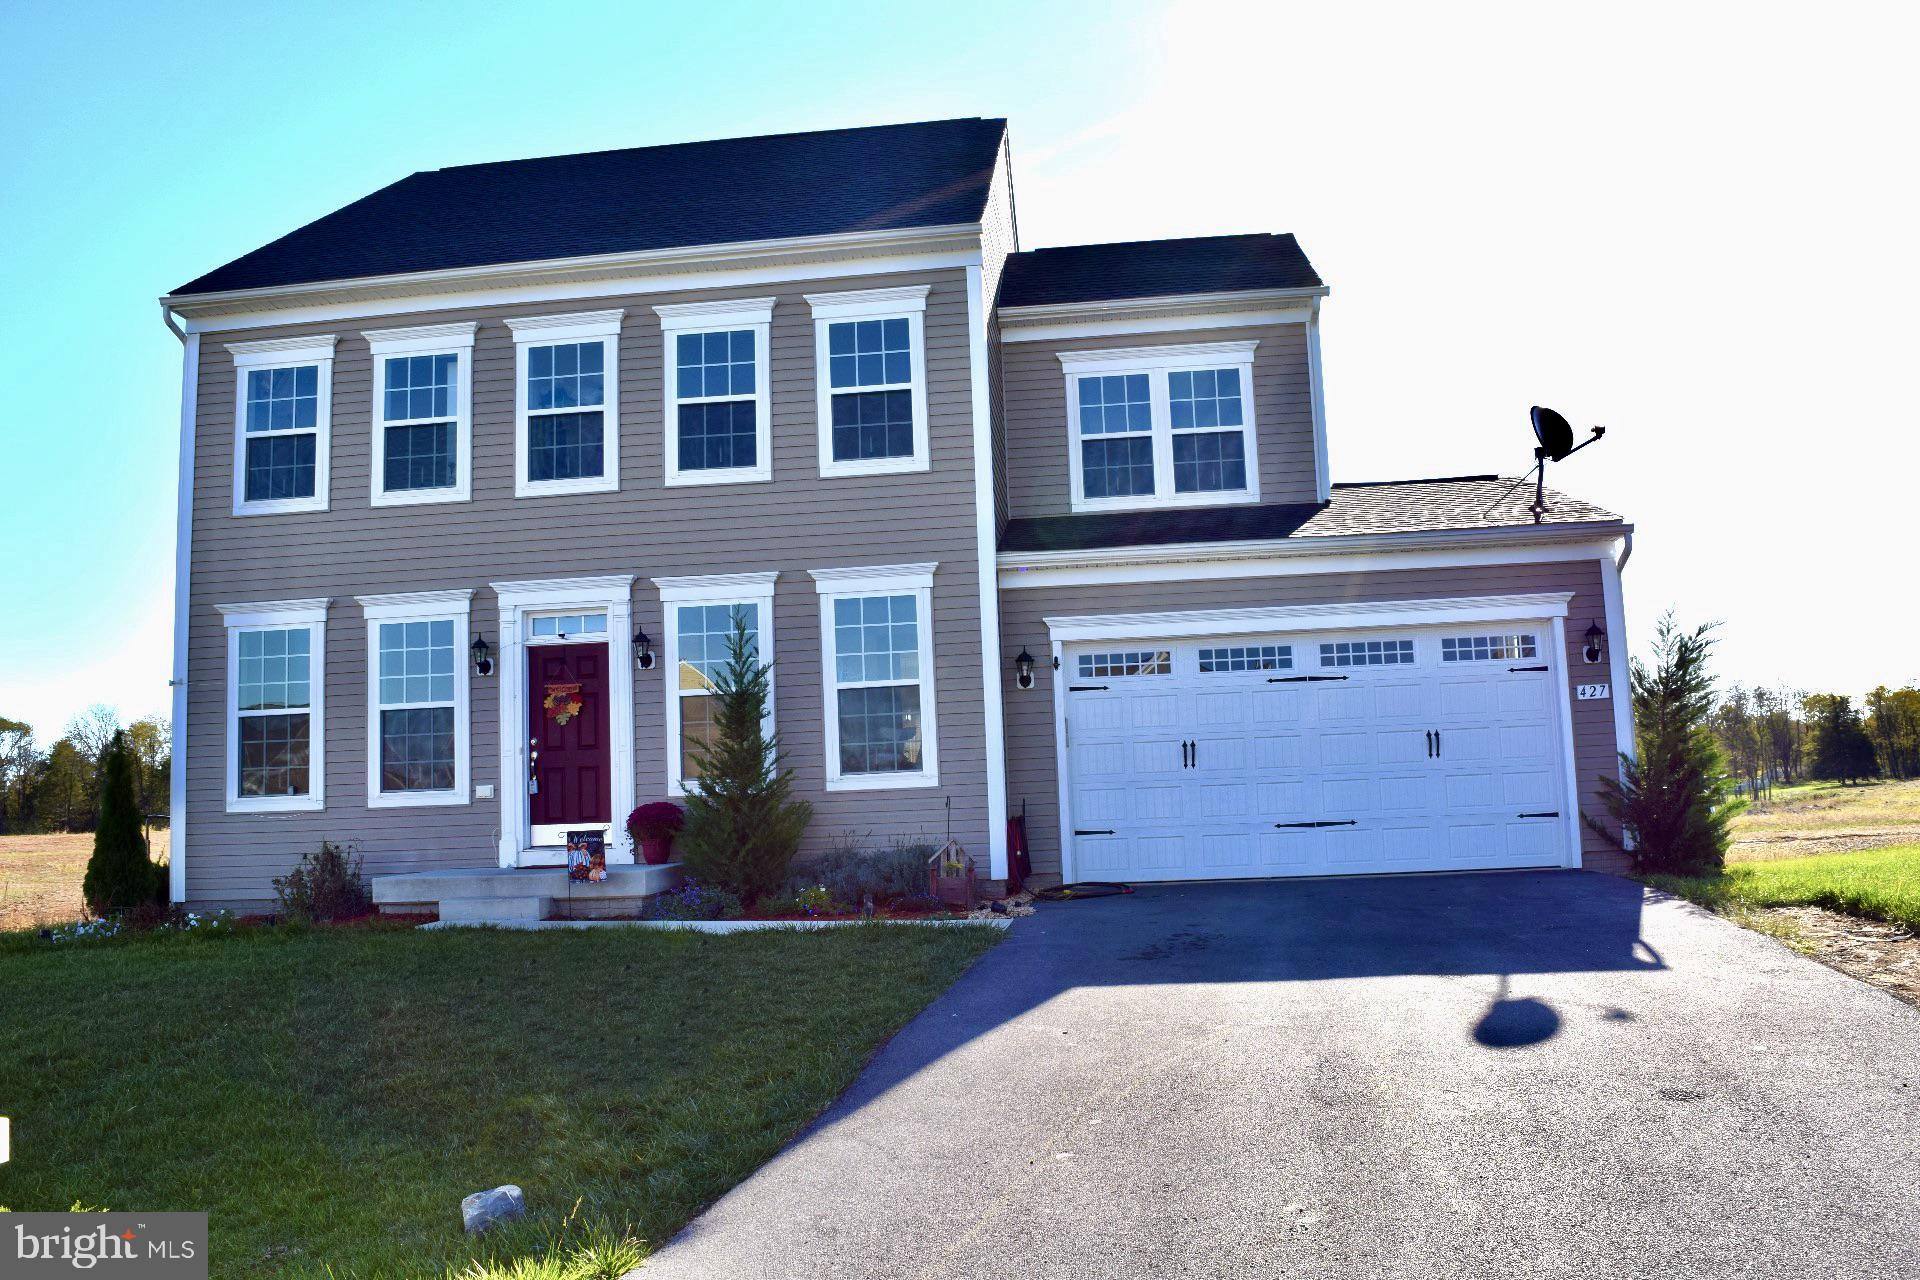 Only a few years old this Beautiful Home that greets you with Hardwood Floors throughout the main level, right into your upgraded Kitchen! The Kitchen offers Quartz Counter Tops, Upgraded Kitchen Cabinets, Upgraded Stainless Steel Appliances, 5 Burner Gas Range, Kitchen Island, and a Tile Back Splash! Upstairs offers 4 Spacious Bedrooms, 2 Full BA's and a very convenient Laundry Hook up. Upgraded Master Suite w/ Deluxe Master Bath. Each BR has a nice walk in closet and is already been pre wired for the ceiling fans of your choosing. Downstairs offers a partially finished basement that adds tons of room for entertaining. Some of the extras this home has to offers are Dual 2 Zone HVAC System, Upgraded 2 Car Garage Door, Rough in for Bathroom in Basement and much more. Schedule your showing today!